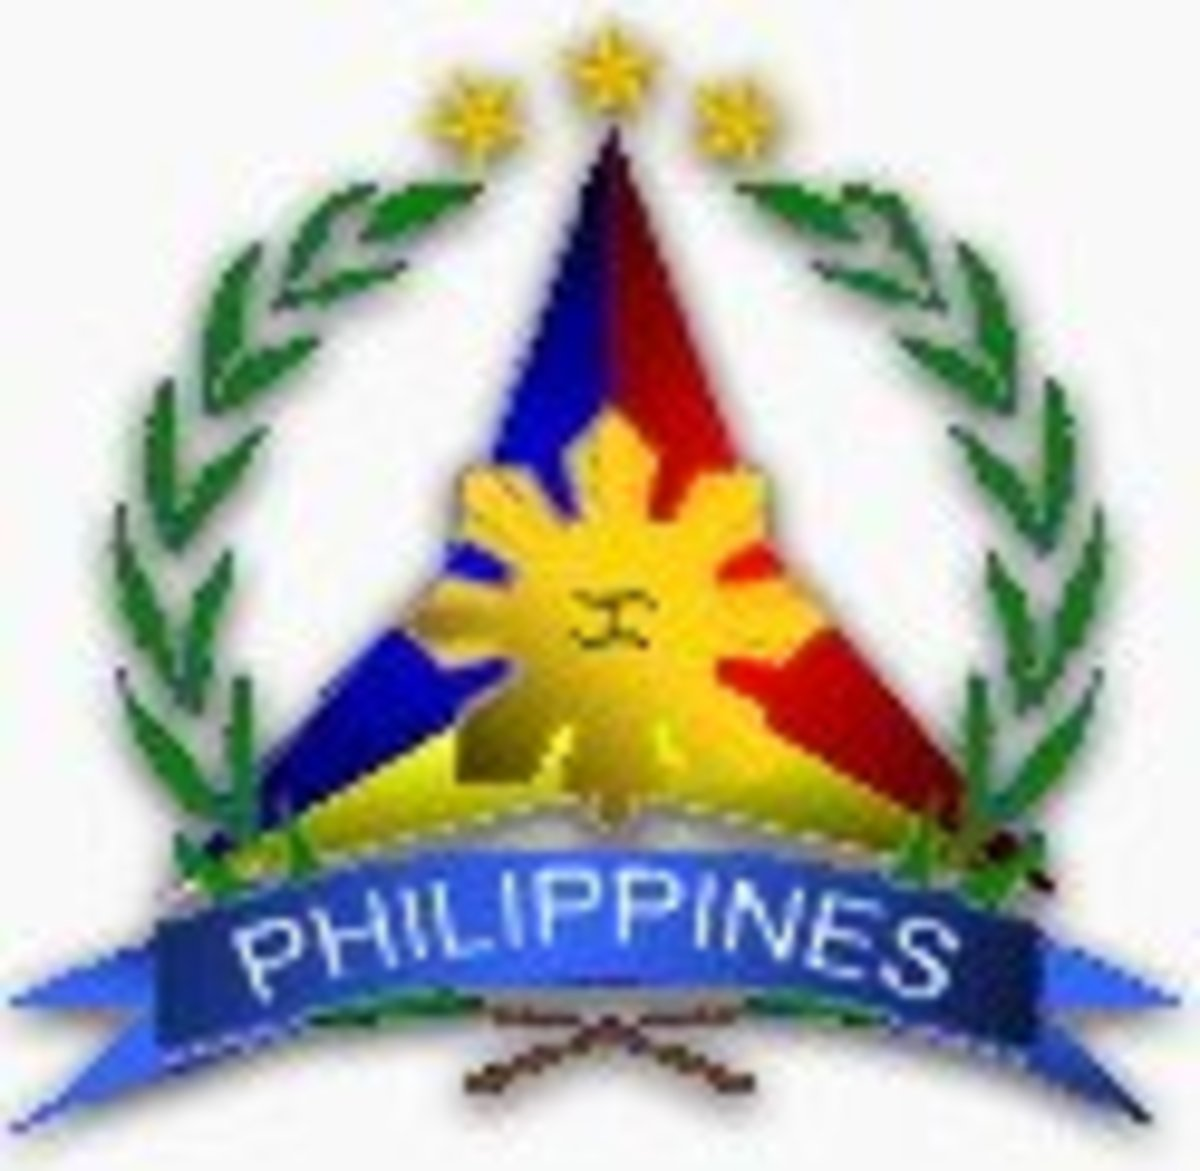 Philippine social and political issues